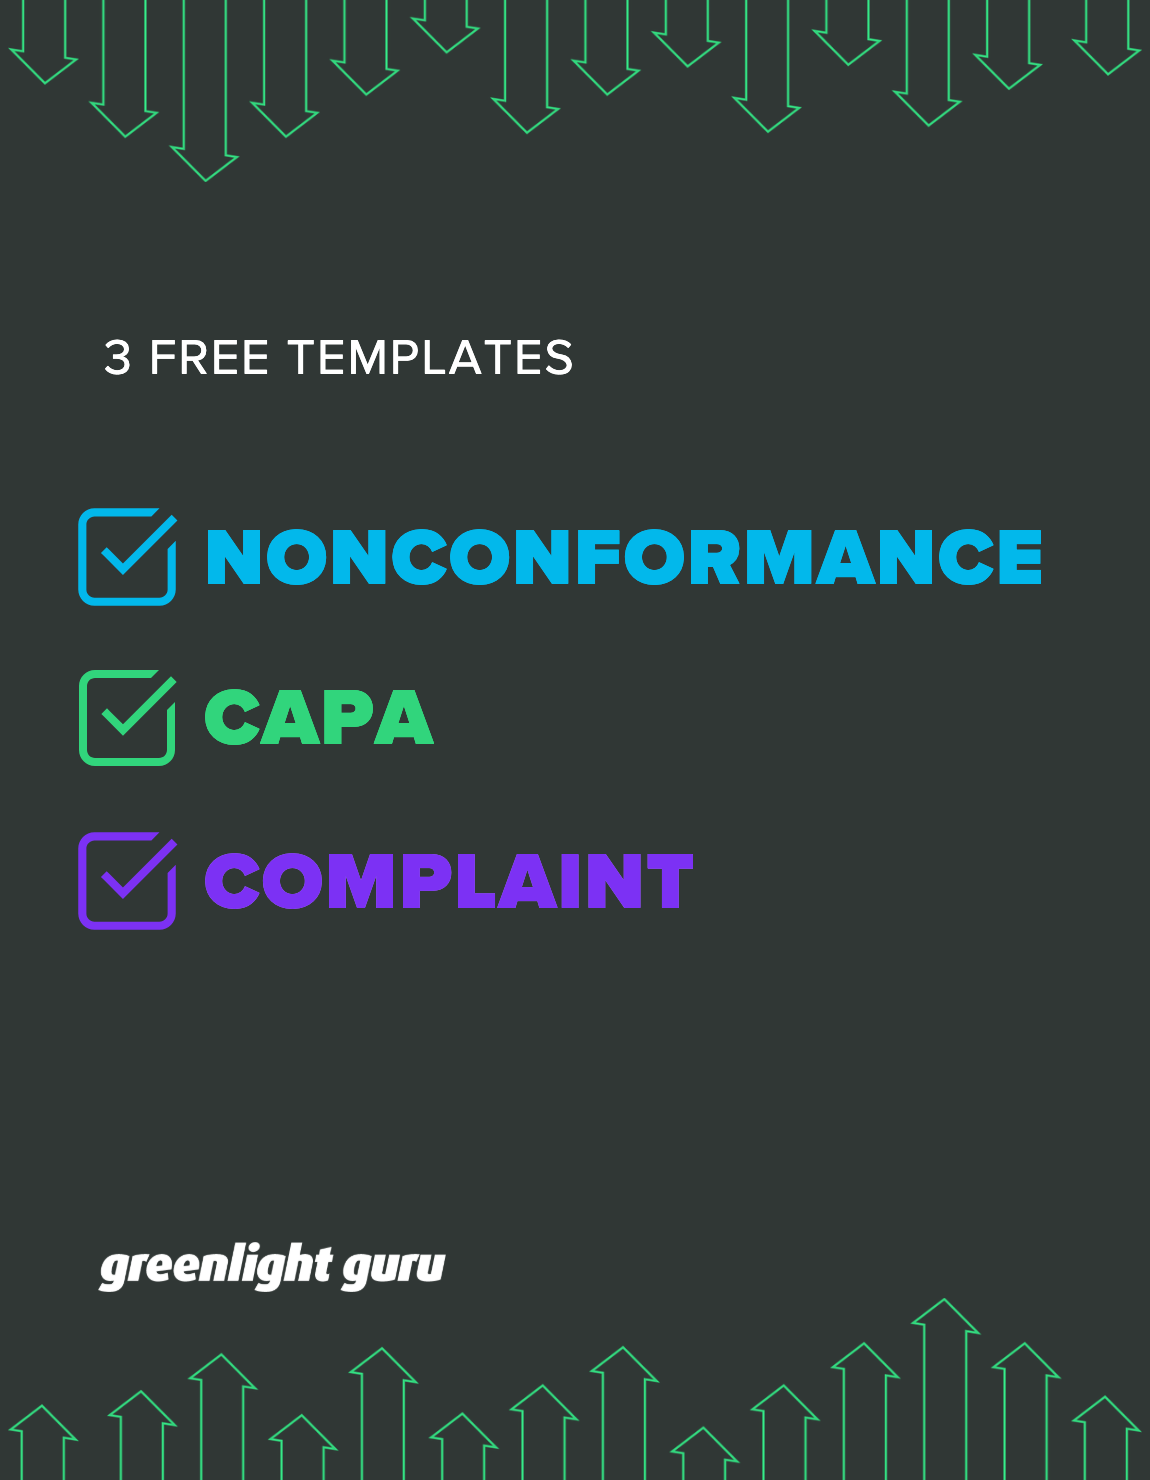 3 Free Templates for NC, CAPA, Complaint slide-in cover-2